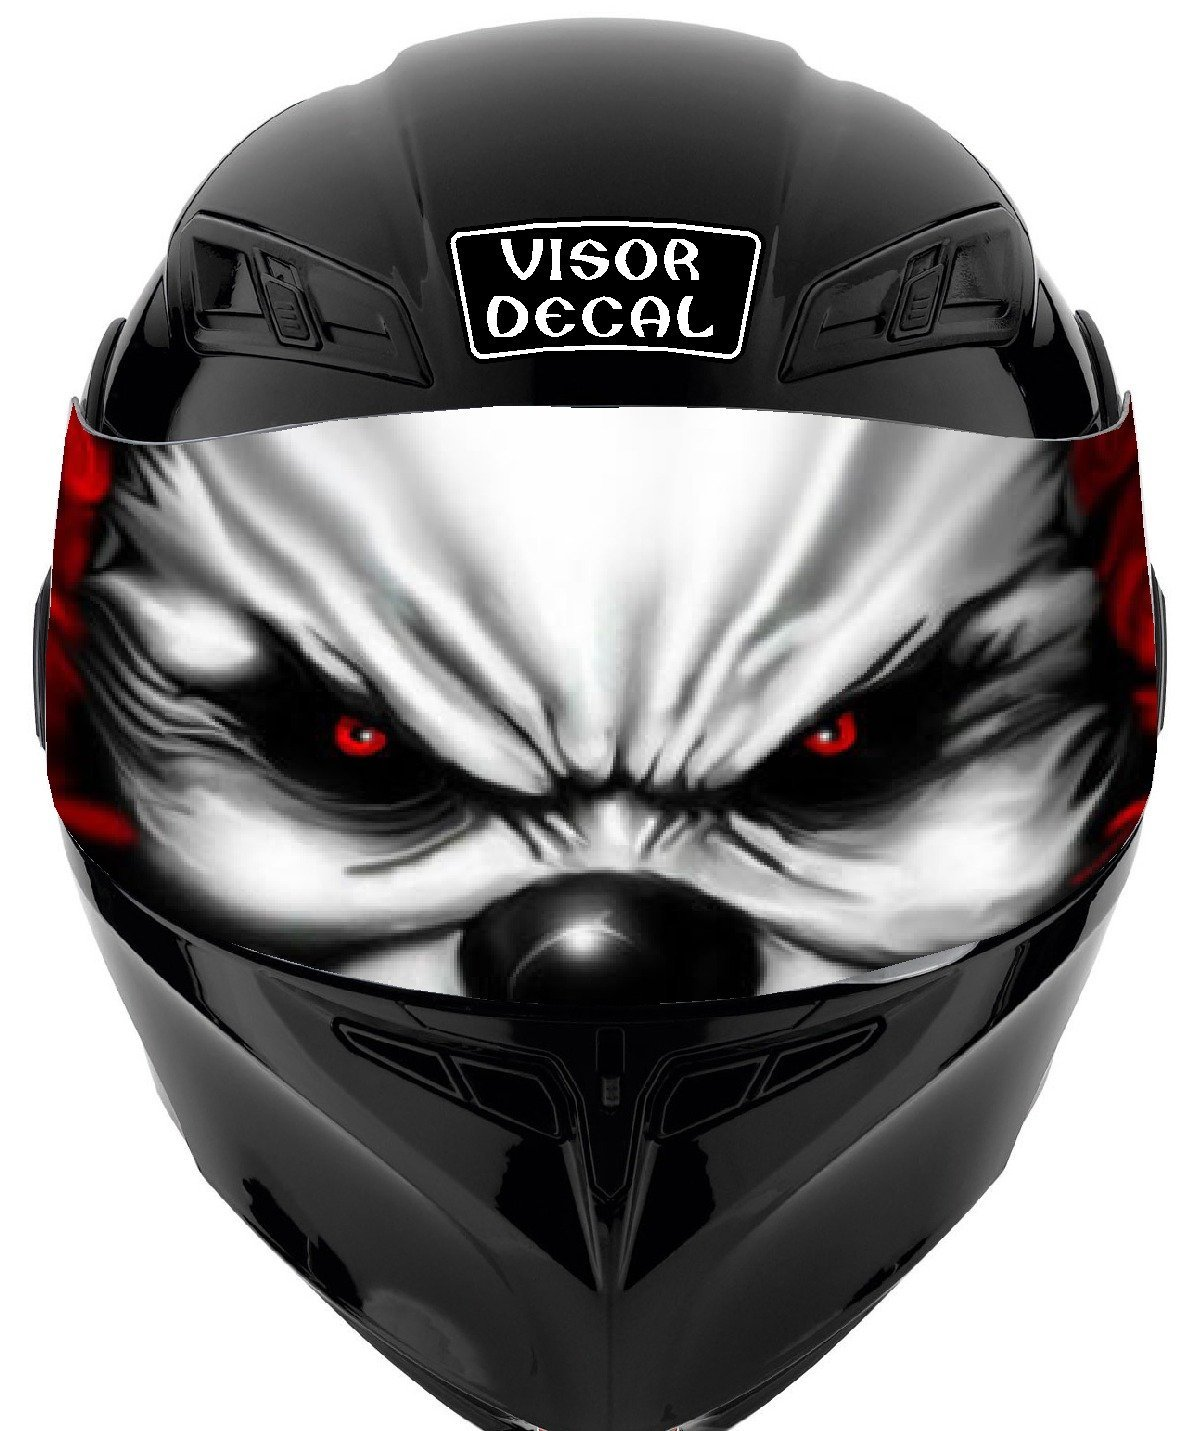 bfbd8644 V14 Evil Clown VISOR TINT DECAL Graphic Sticker Helmet Fits: Icon Shoei  Bell HJC Oneal